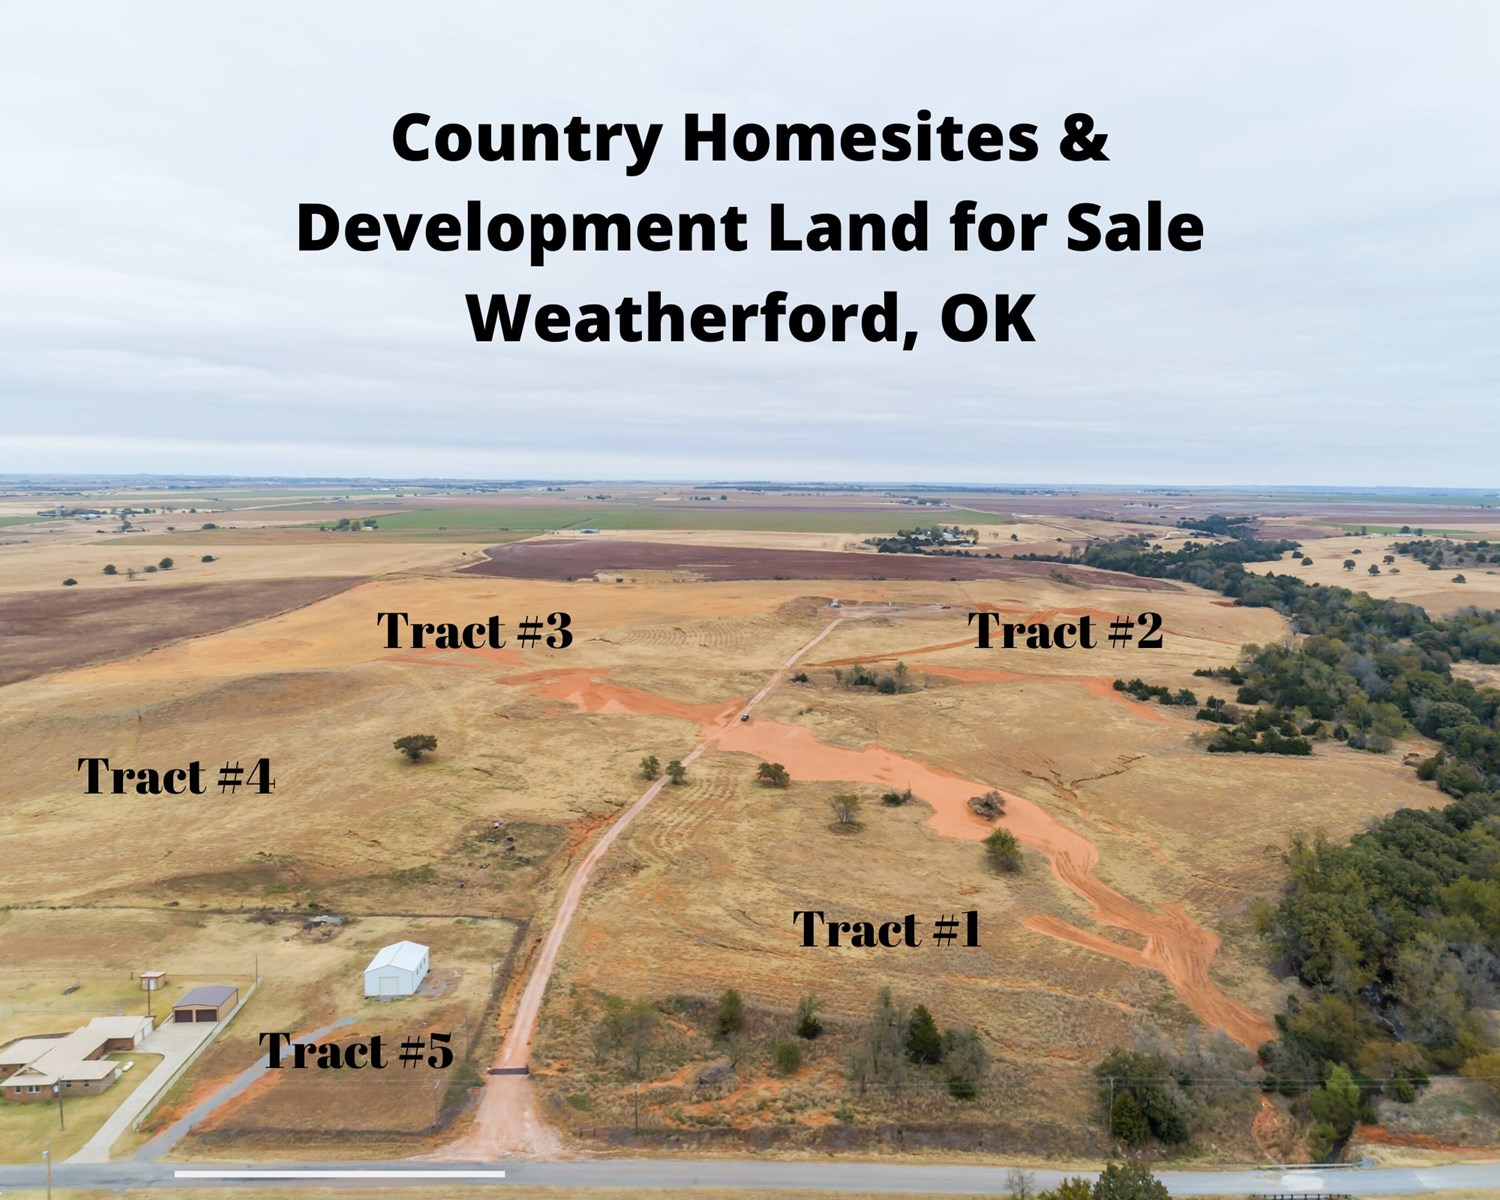 Country Home Sites & Development Land for Sale - Custer Co.